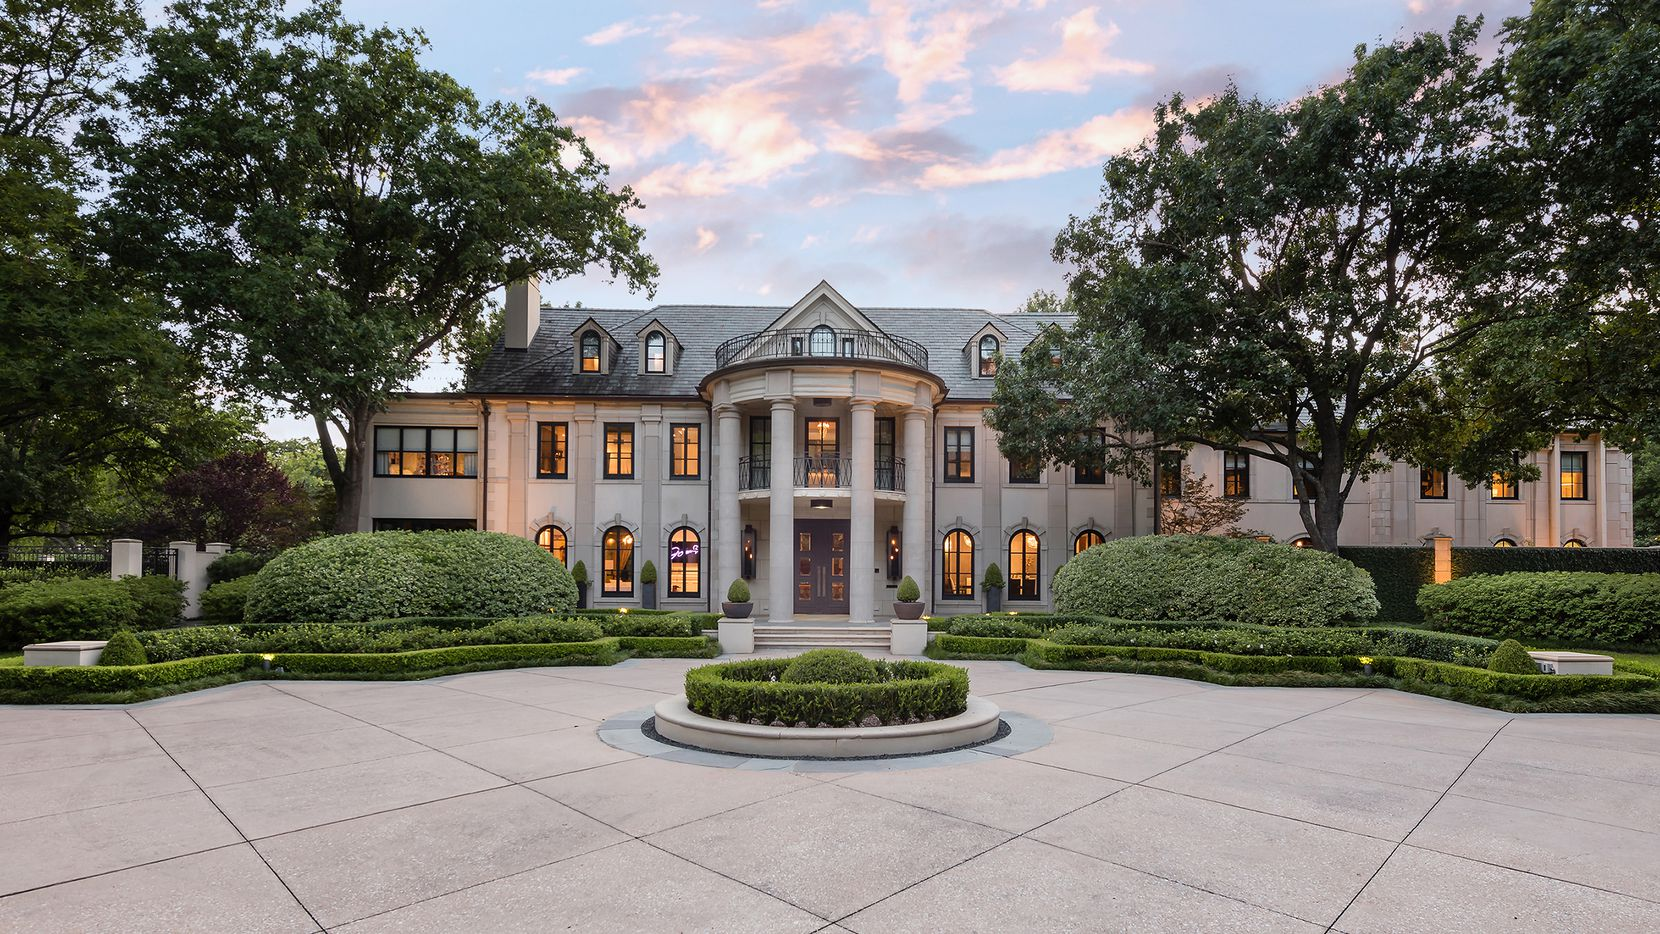 Allie Beth Allman & Associates sells the most homes in Dallas listed over $1 million, per Multiple Listing Service.